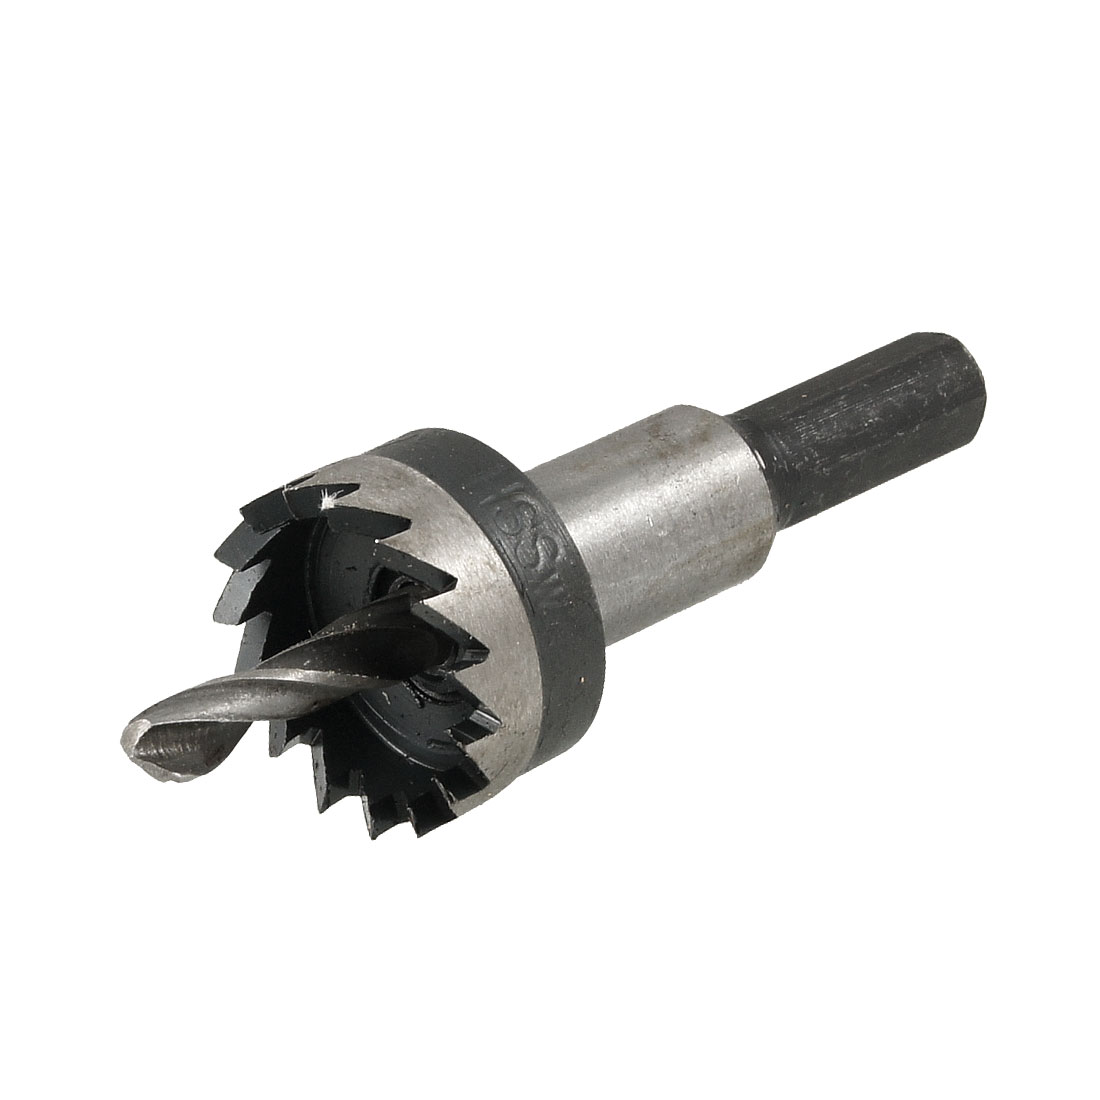 HSS 22mm Dia Iron Cutting 5mm Twist Drilling Bit Hole Saw Tool